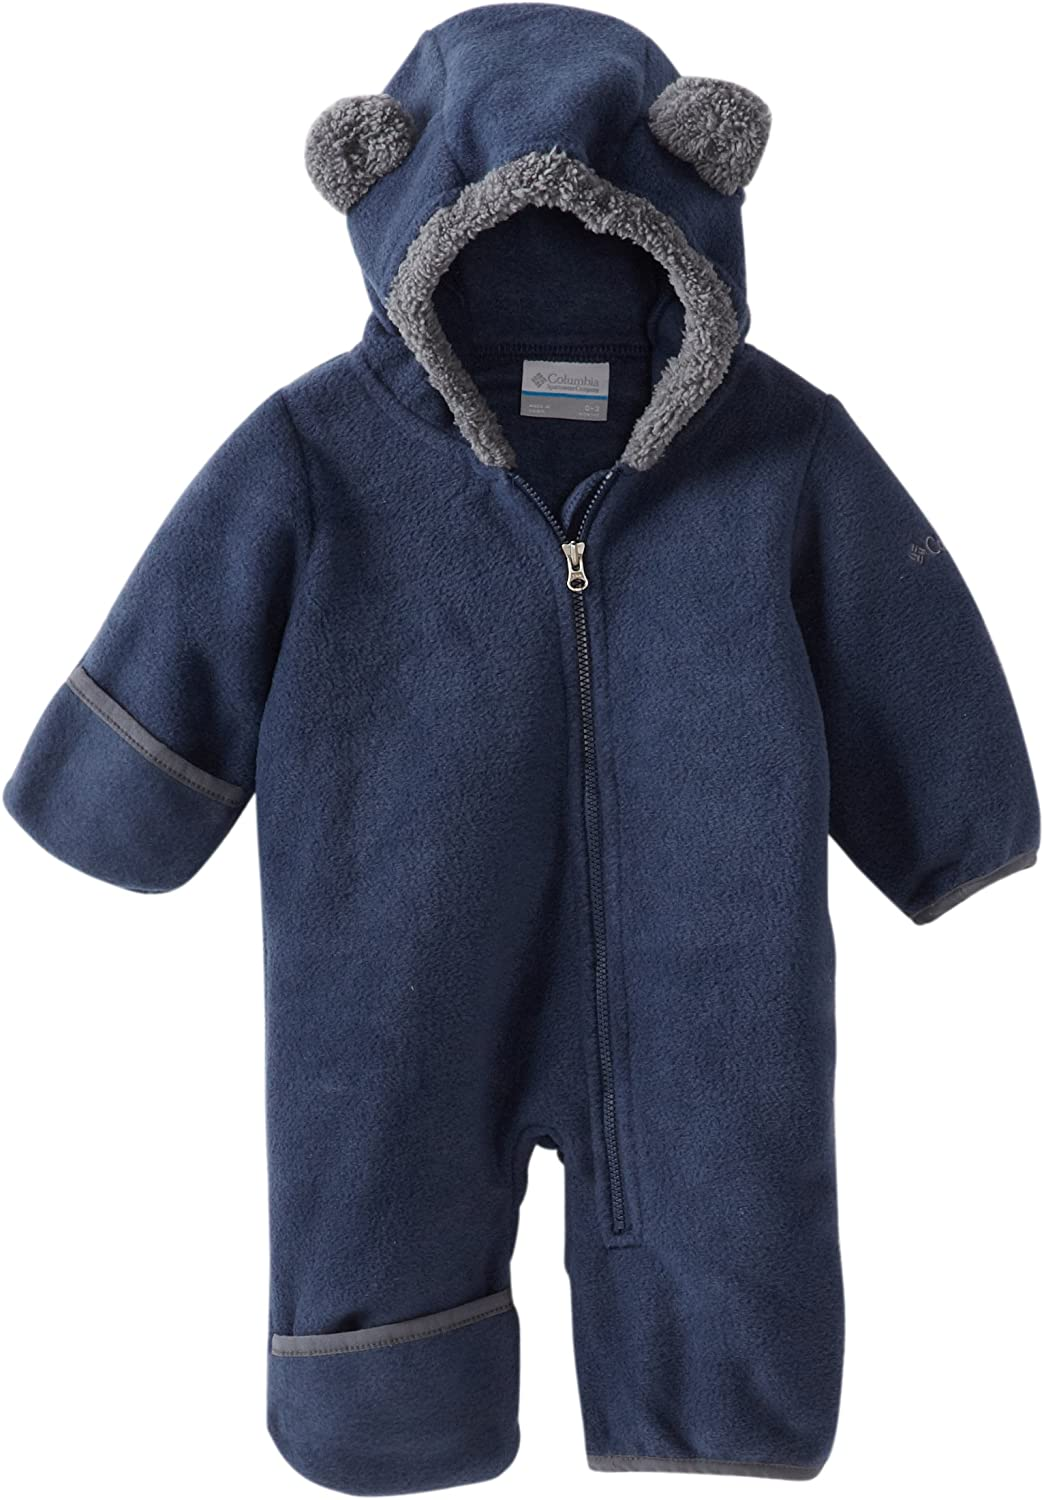 Columbia Baby Tiny Bear II Bunting, Warm Soft Fleece